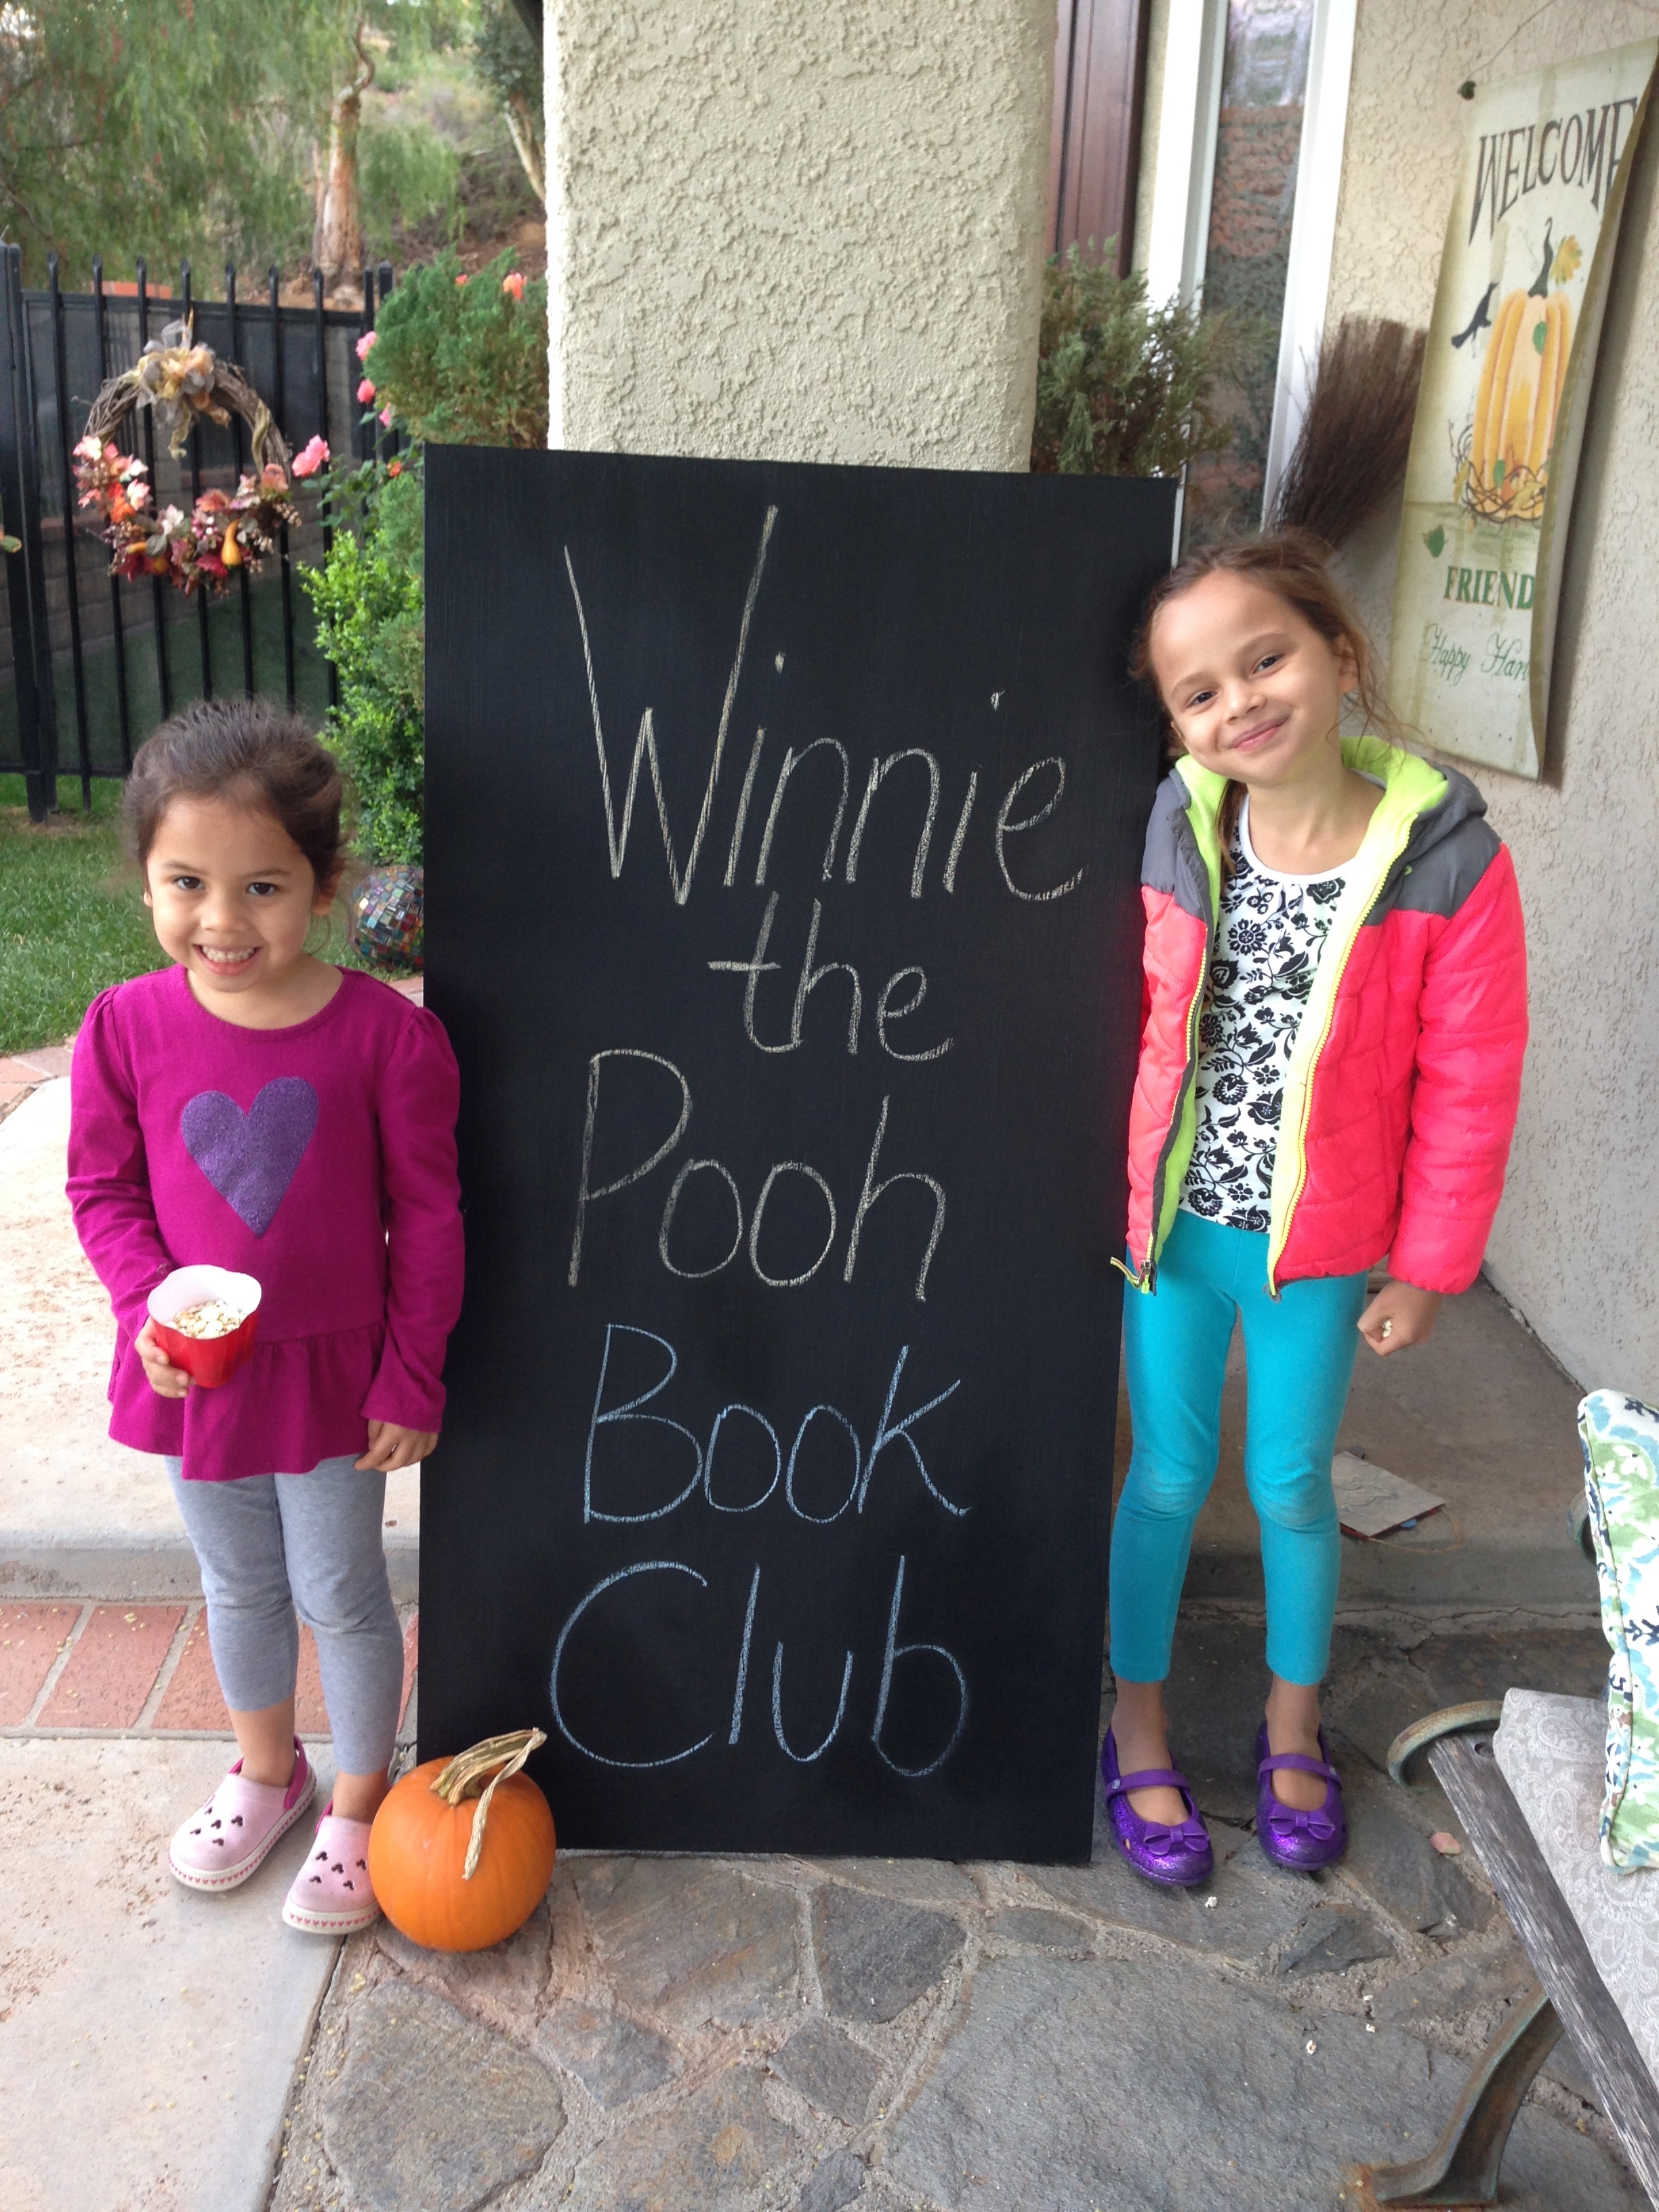 Welcome to Winnie Book Club!